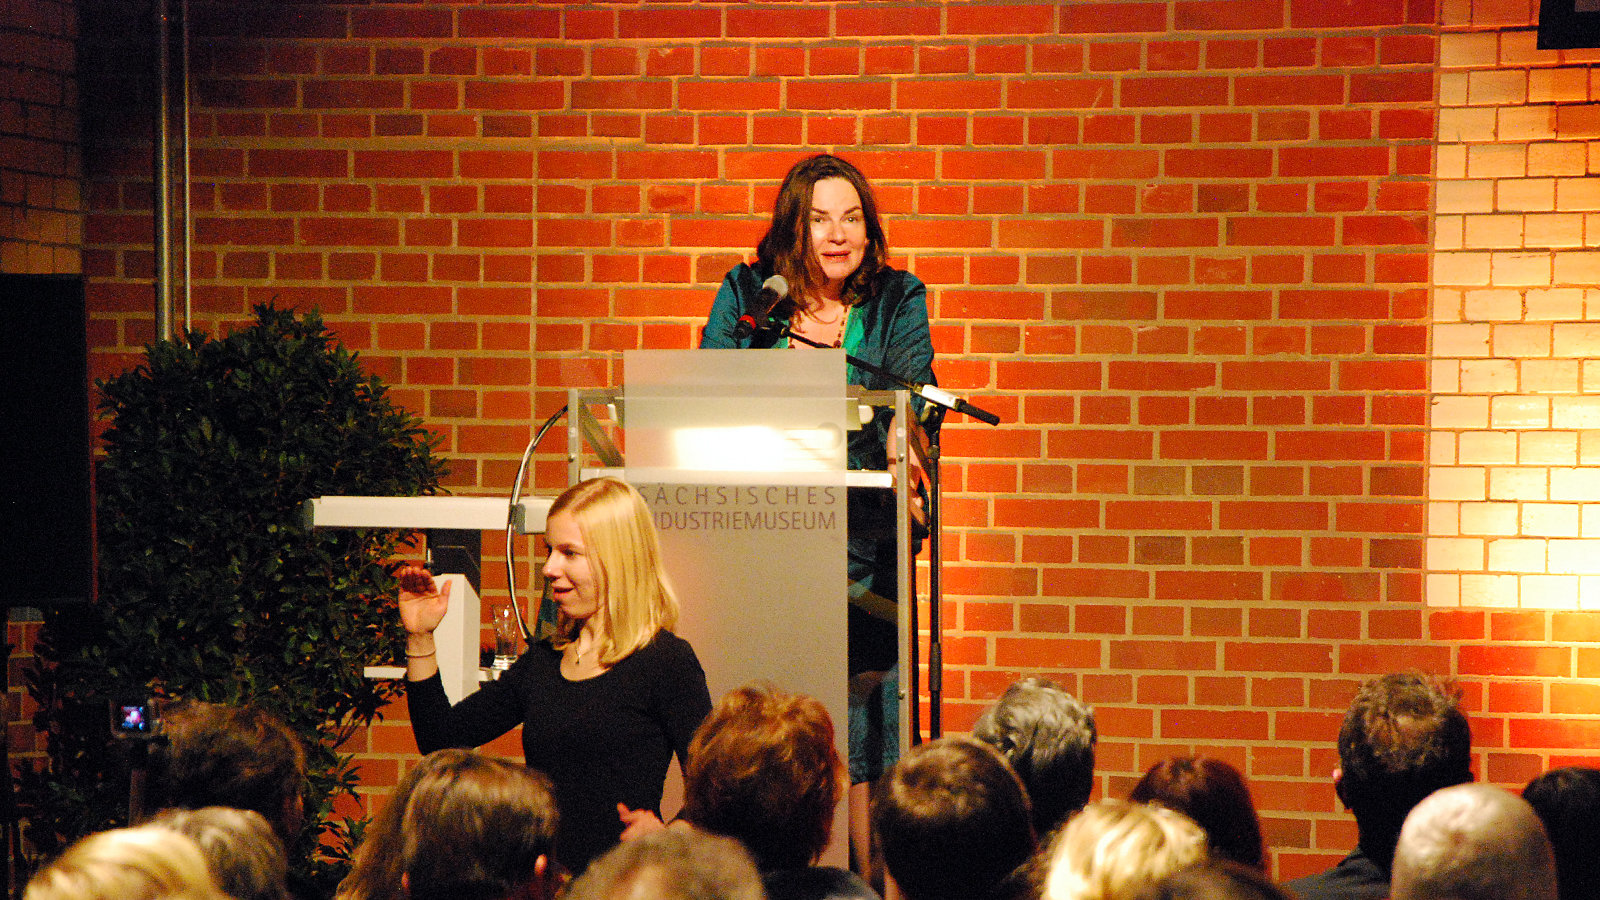 in front of the audience a woman makes gestures, while another woman holds a speech